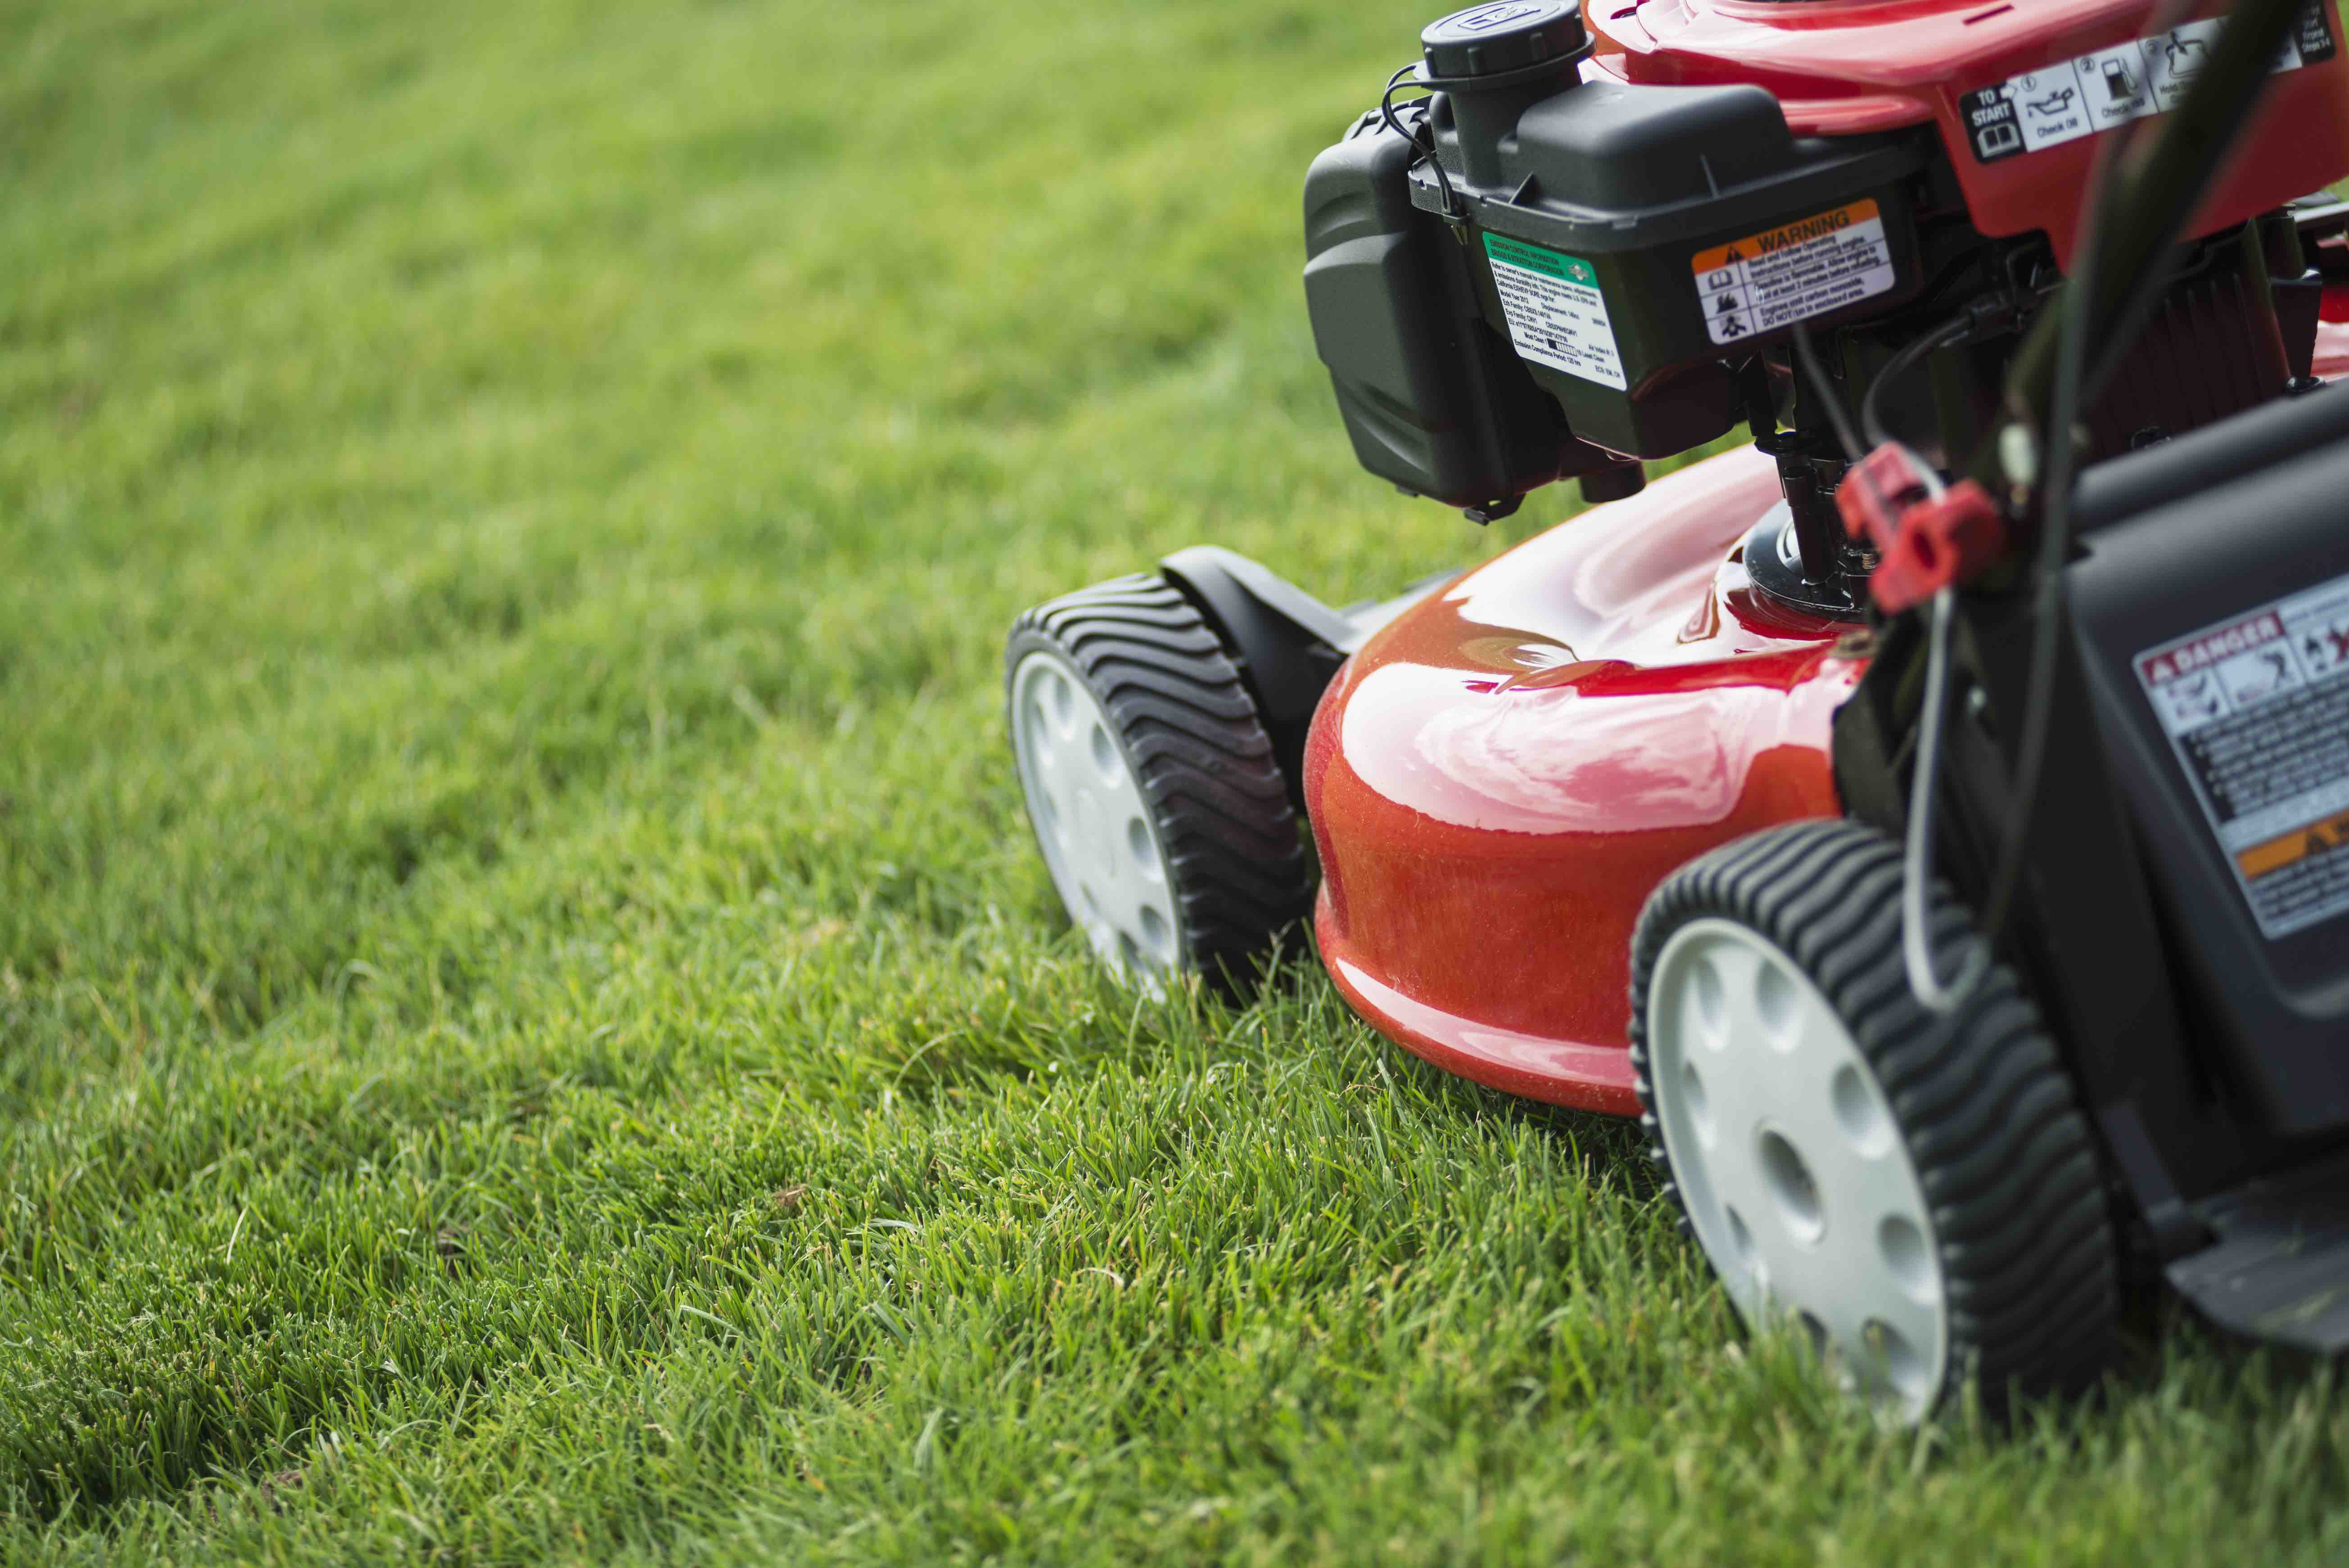 Texans Are Leaving Negative Reviews of Mowing Company That Distributed Racist Fliers